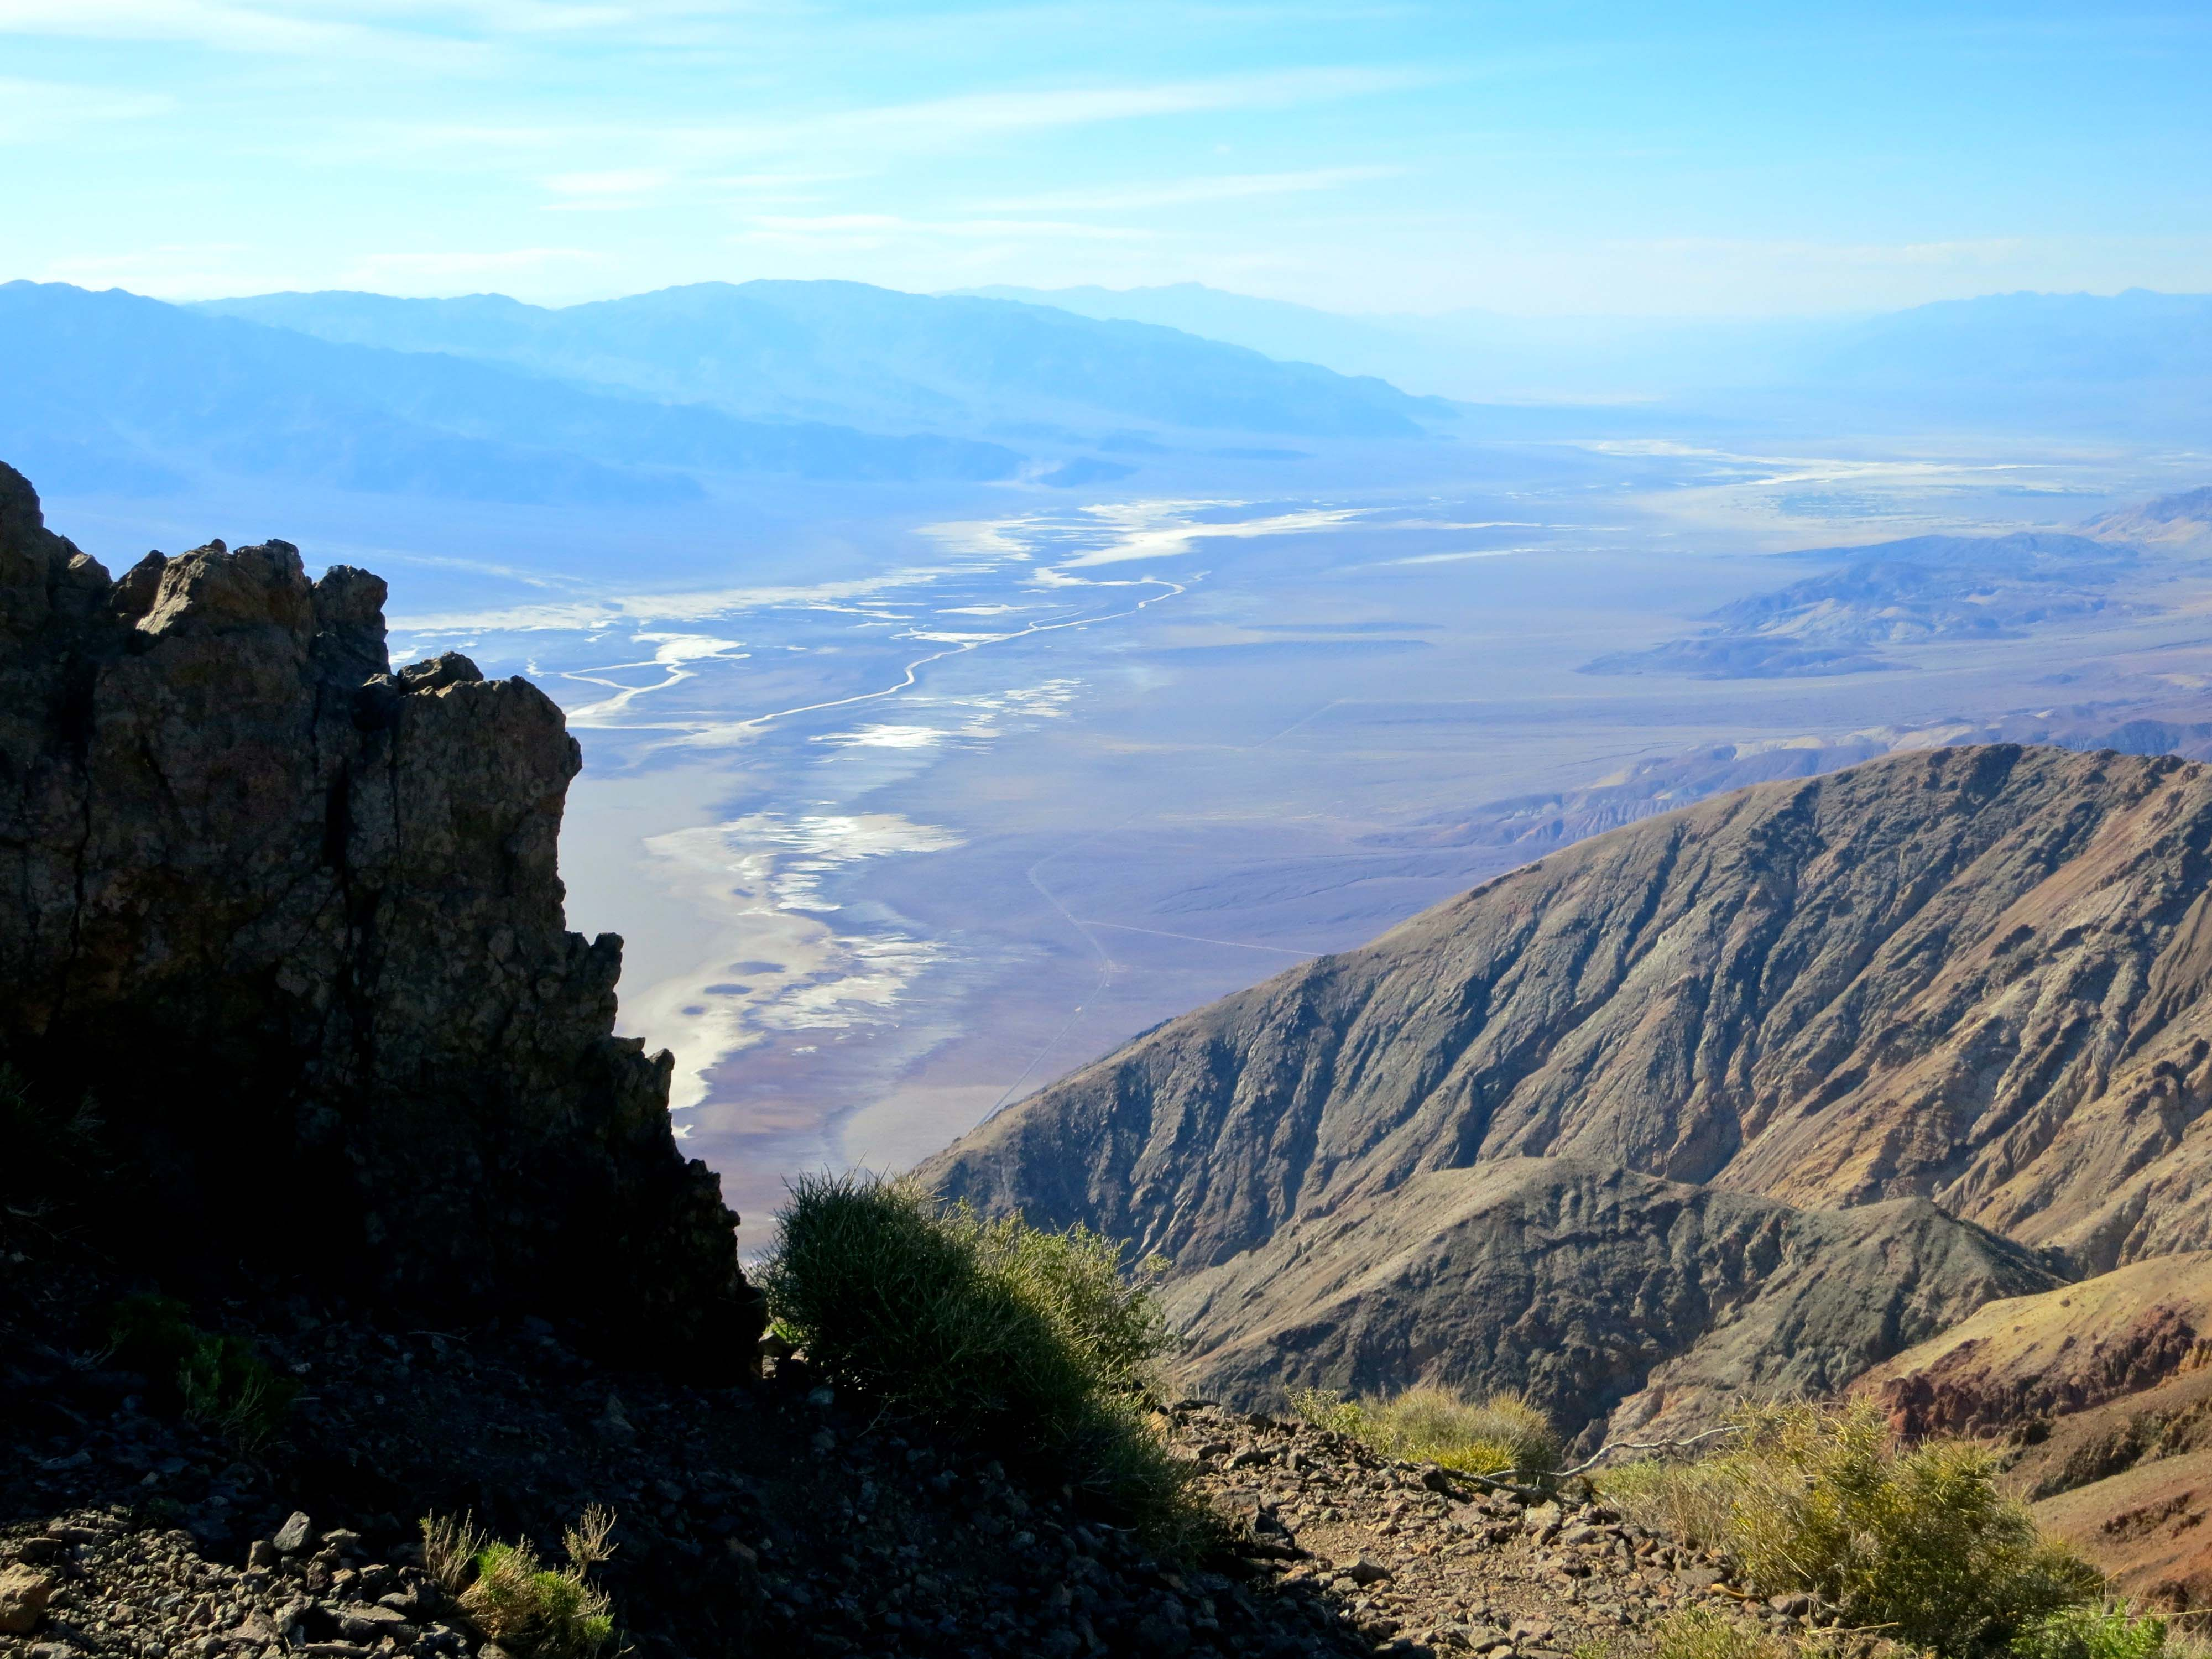 Dante's View provides a spectacular view of Death Valley.